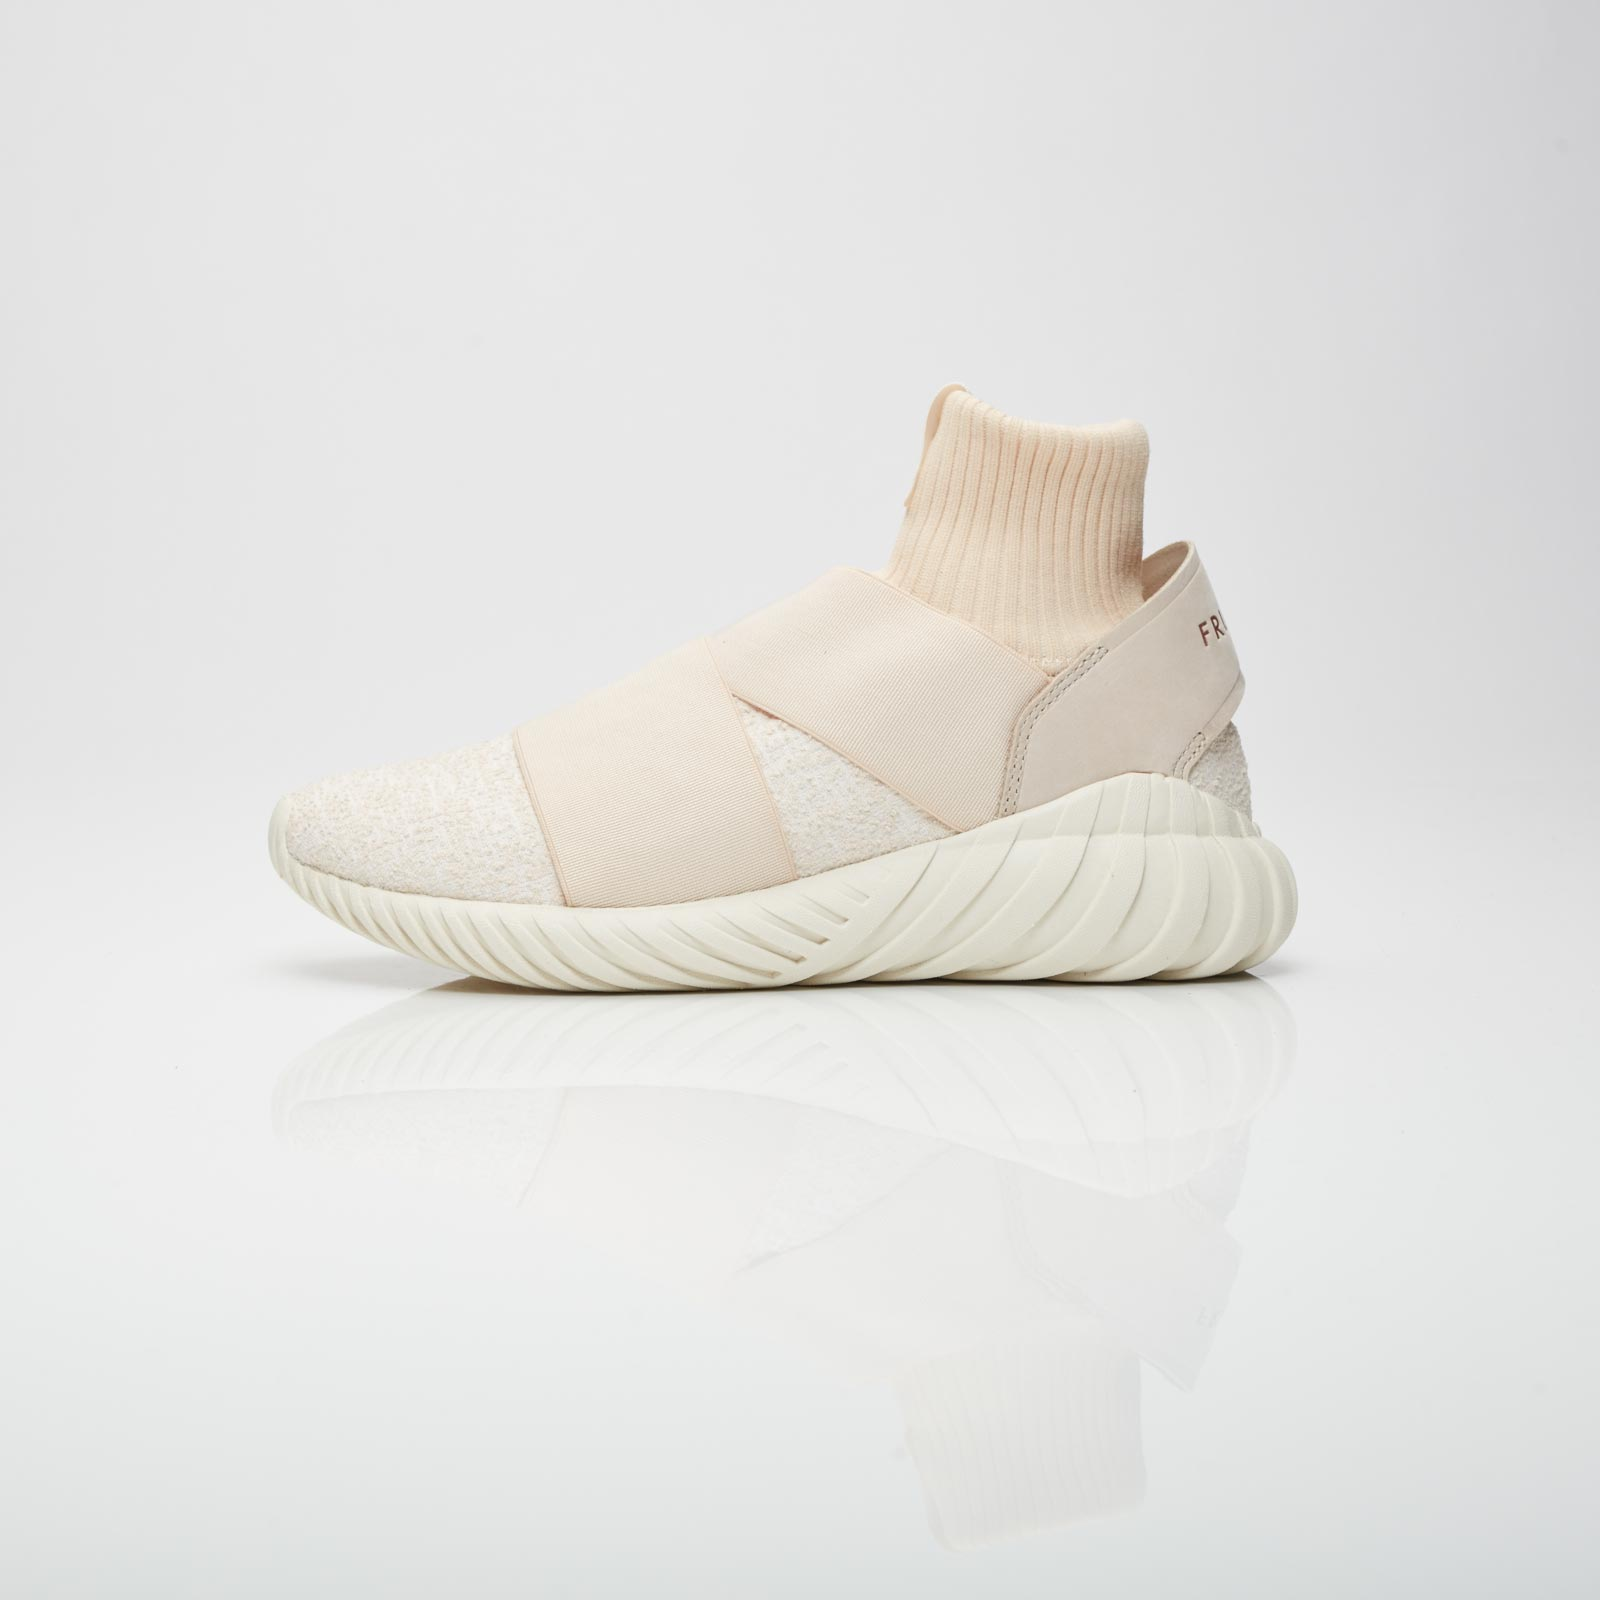 buy popular f4ffe 3f4e6 adidas Tubular Elastic | Overkill x Fruition - Cm8003 ...